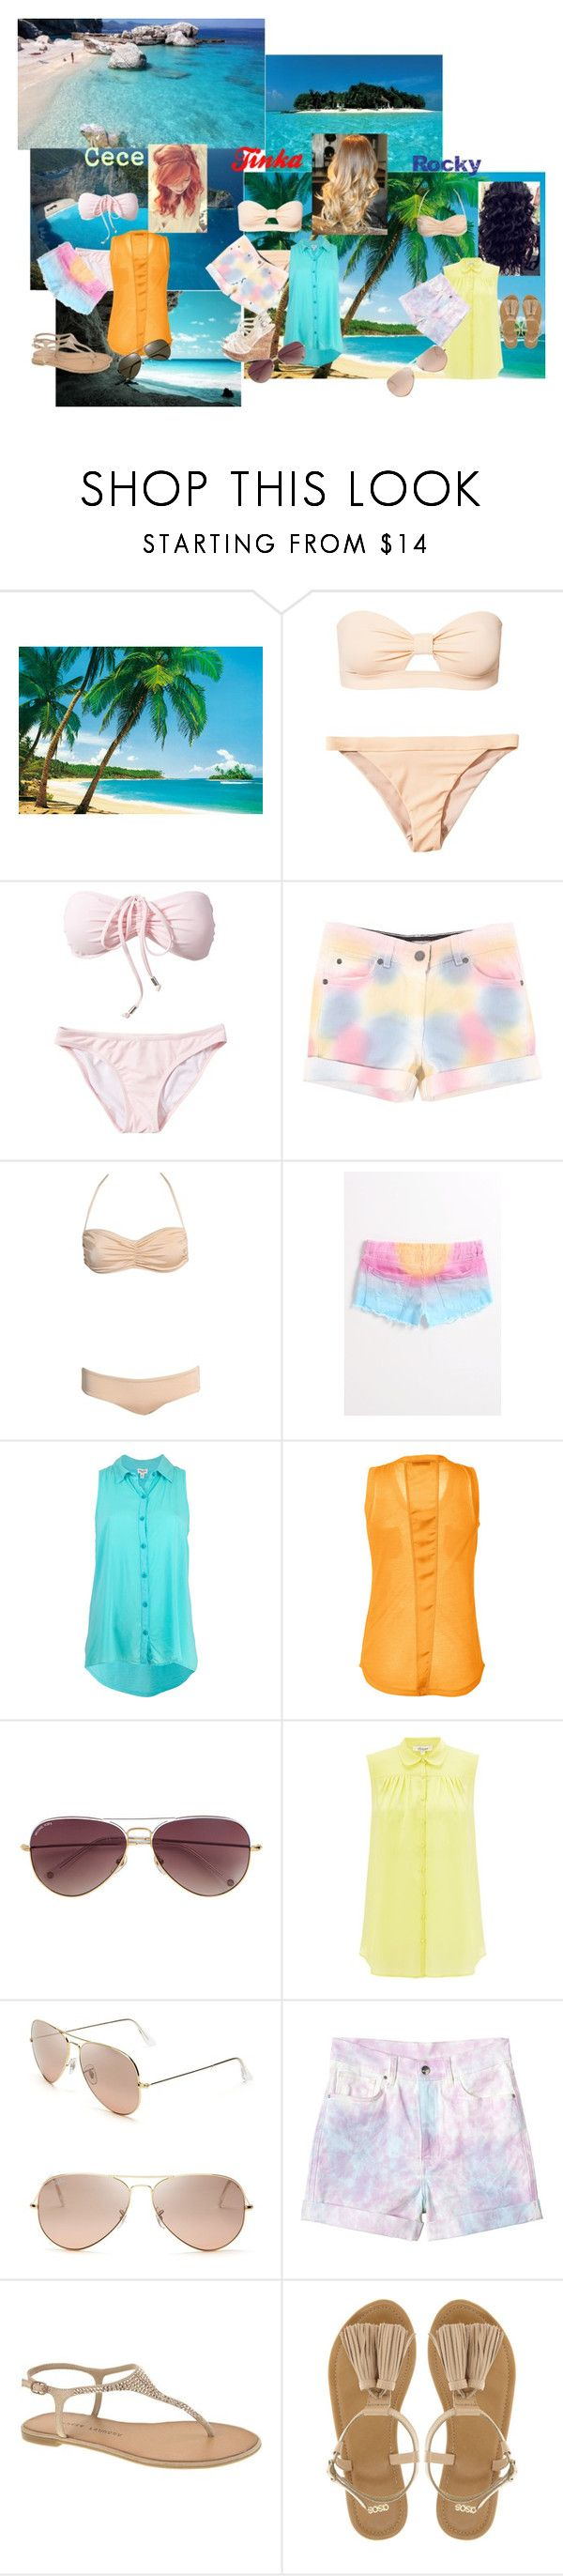 """Shake it up Summer"" by glee2shake ❤ liked on Polyvore featuring Wonderland, Billabong, Splendid, Steffen Schraut, MICHAEL Michael Kors, Somerset by Alice Temperley, Ray-Ban, Monki, Chinese Laundry and ASOS"